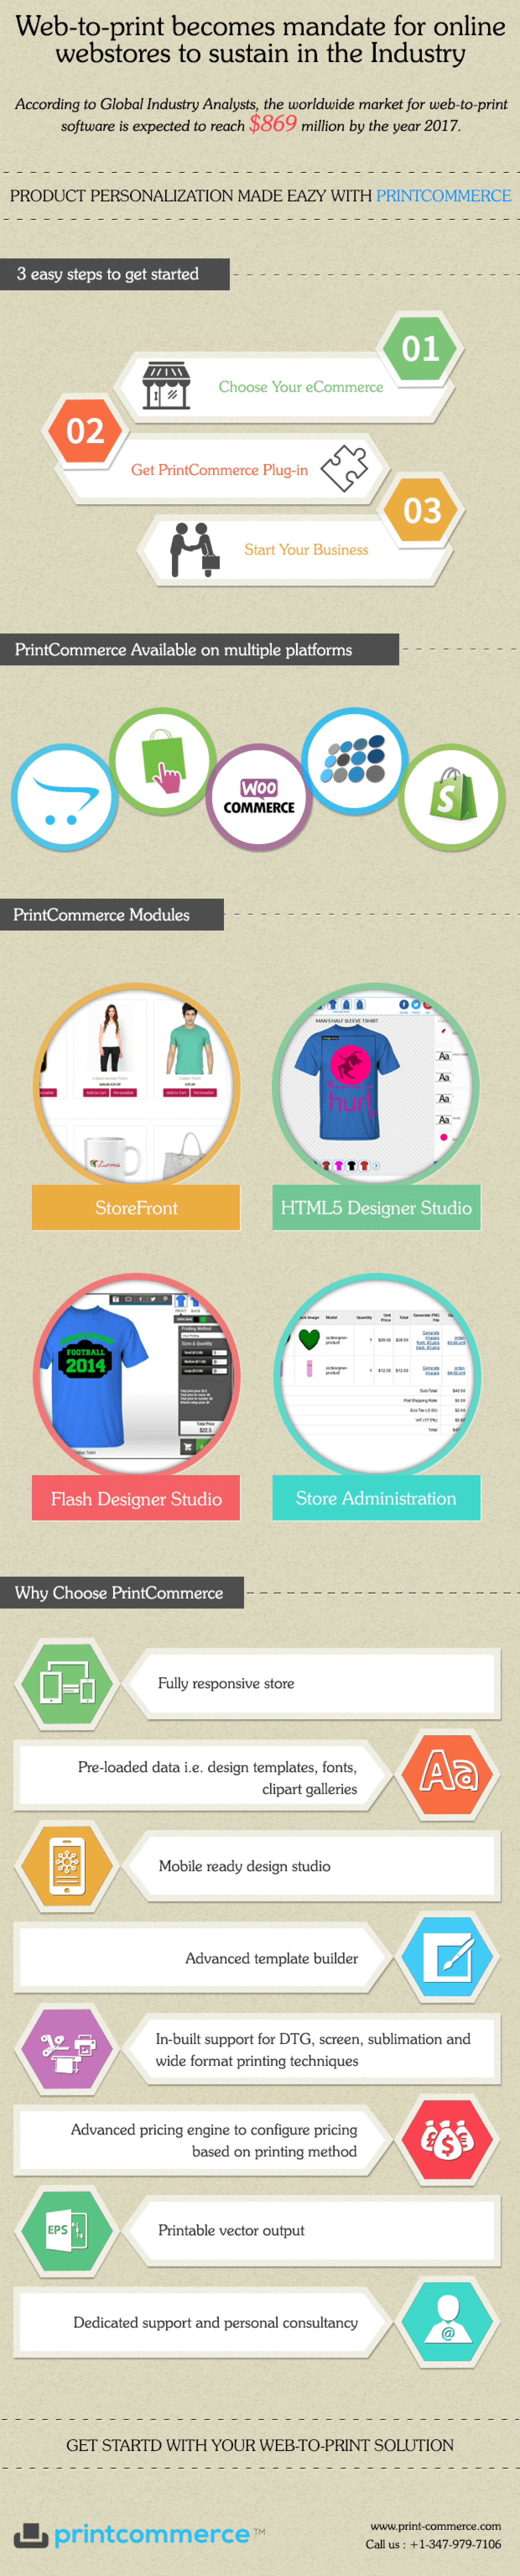 Web to Print becomes mandate for online Webstores to sustain in the Industry Infographic